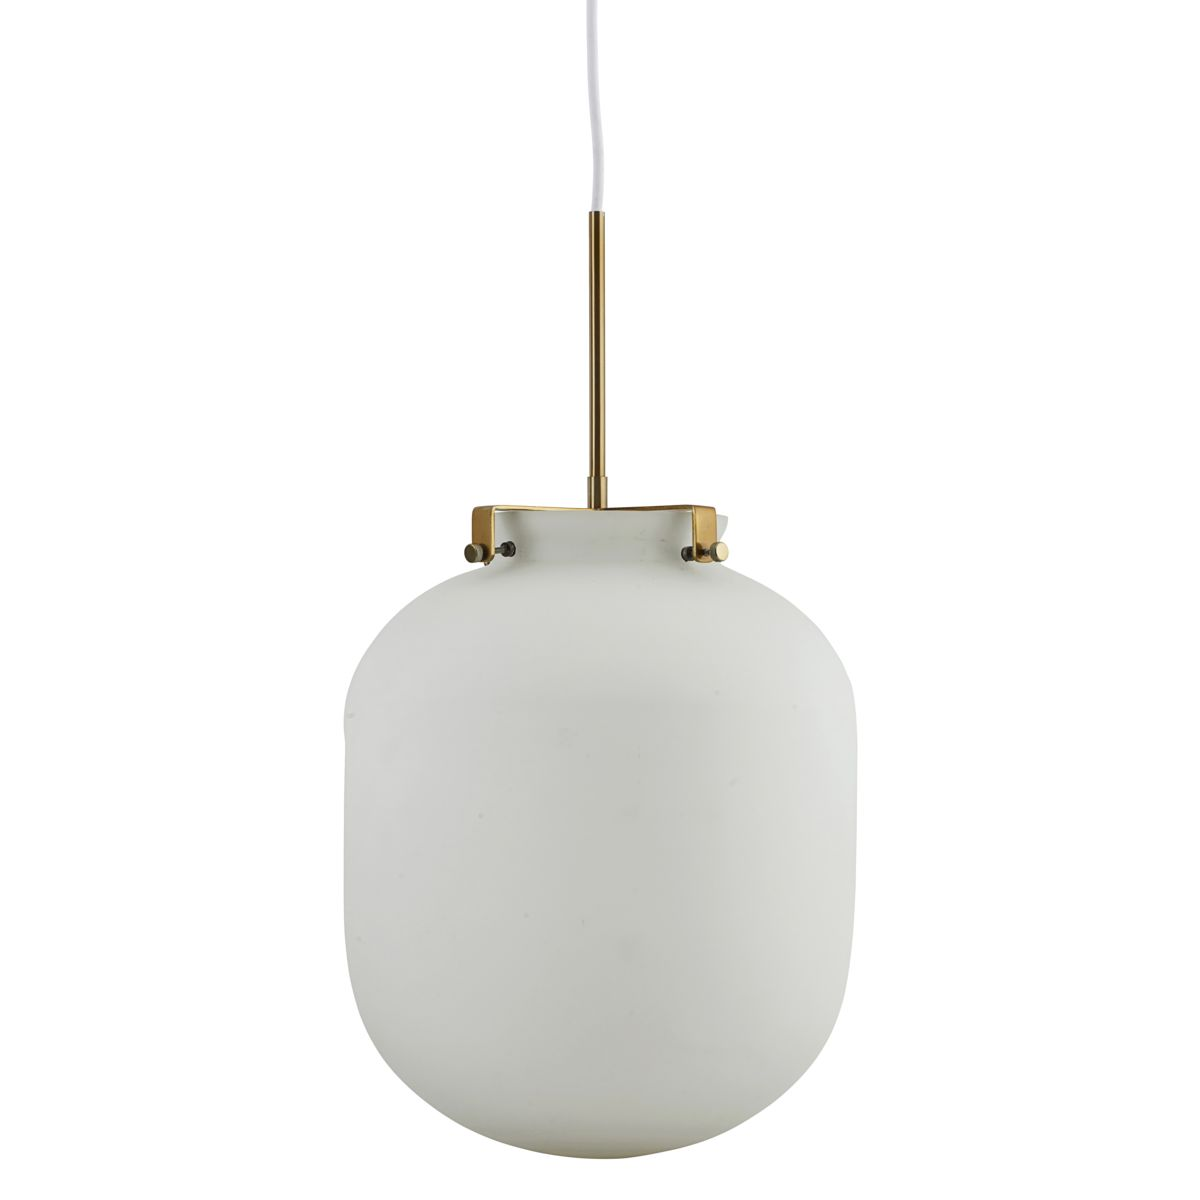 Image of   HOUSE DOCTOR Ball loftslampe - hvid glas og guld metal, oval (Ø 30)